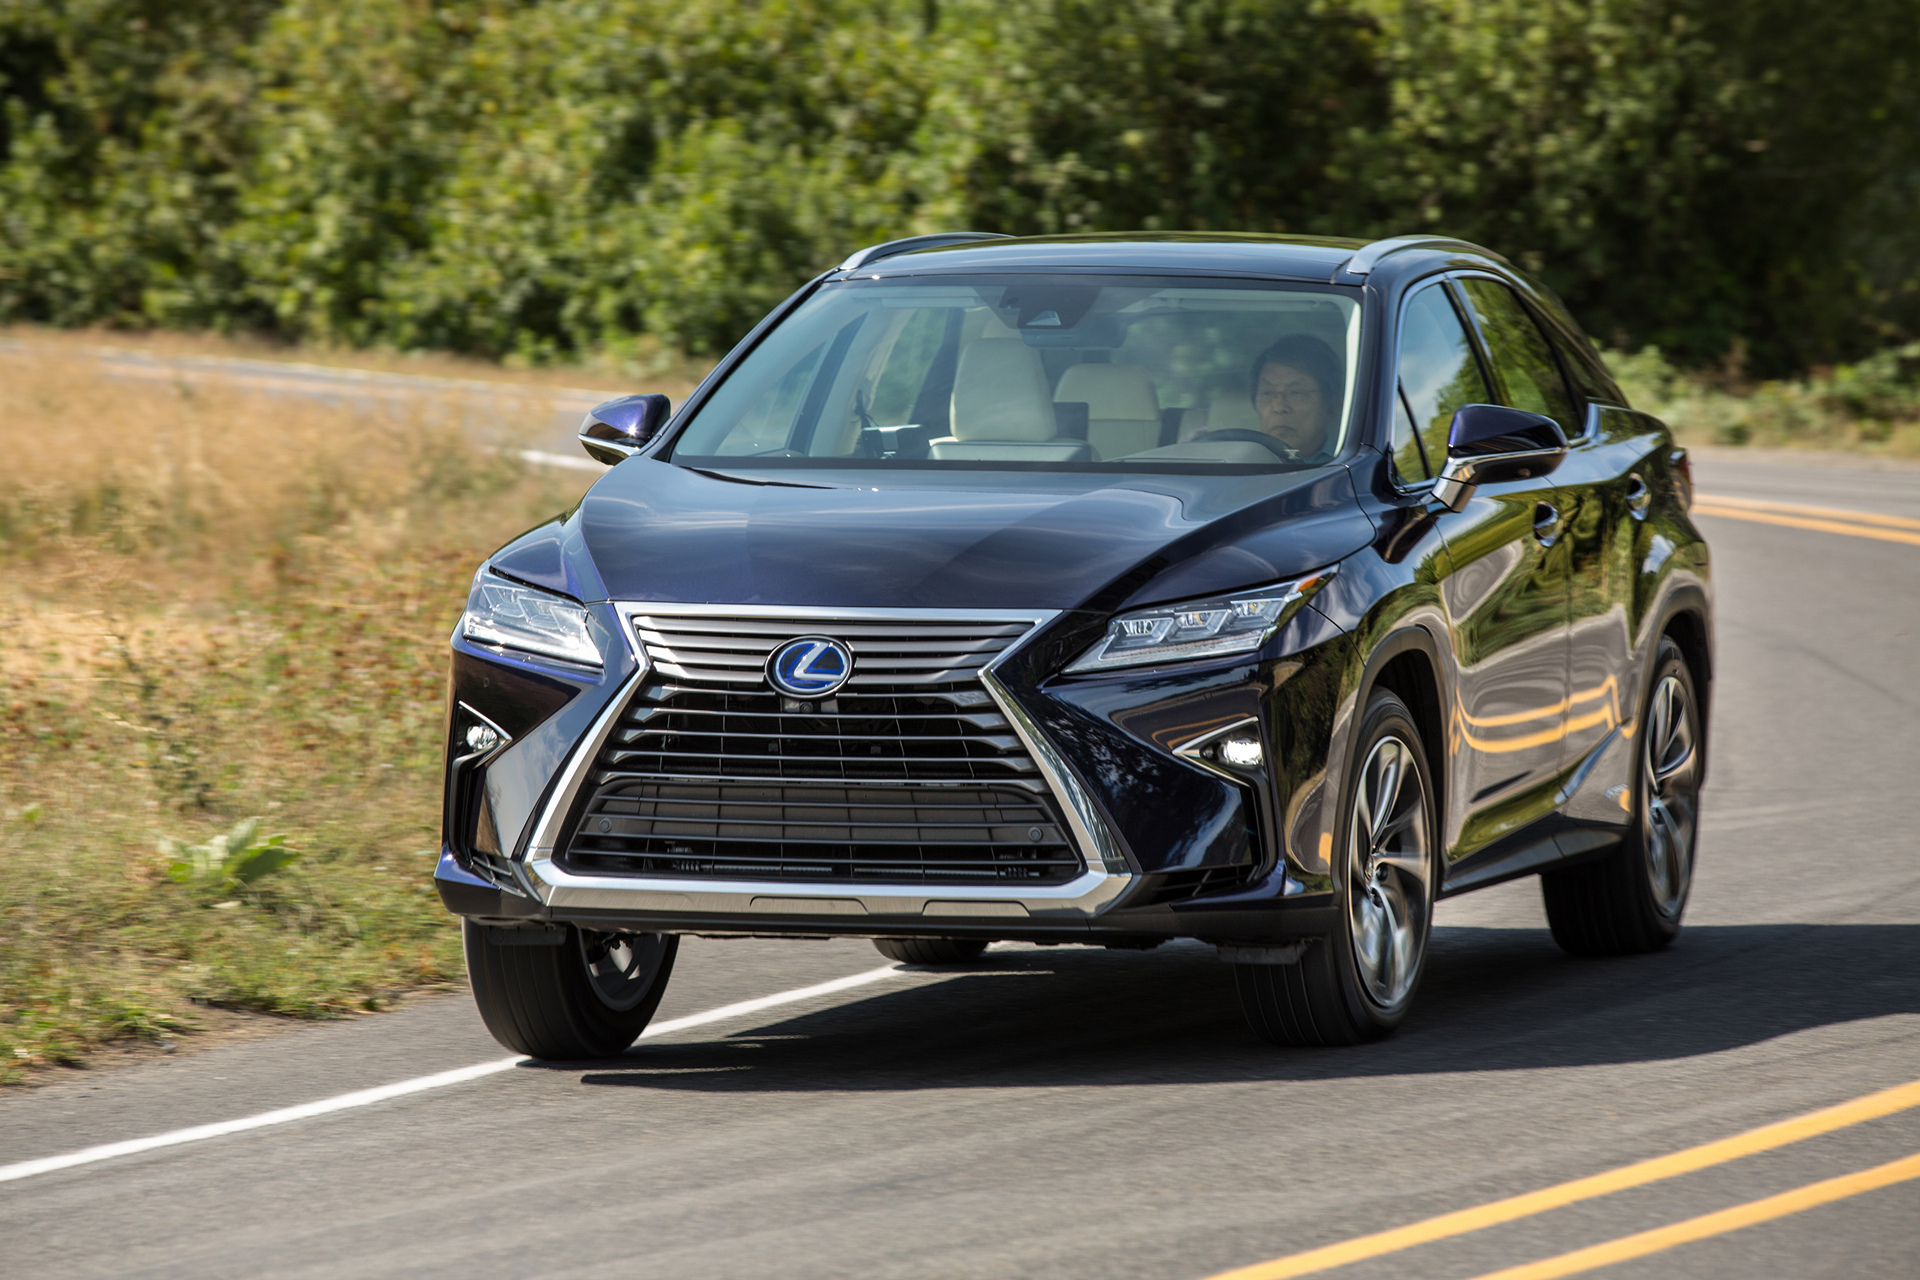 2016 Lexus RX 450h © Toyota Motor Corporation